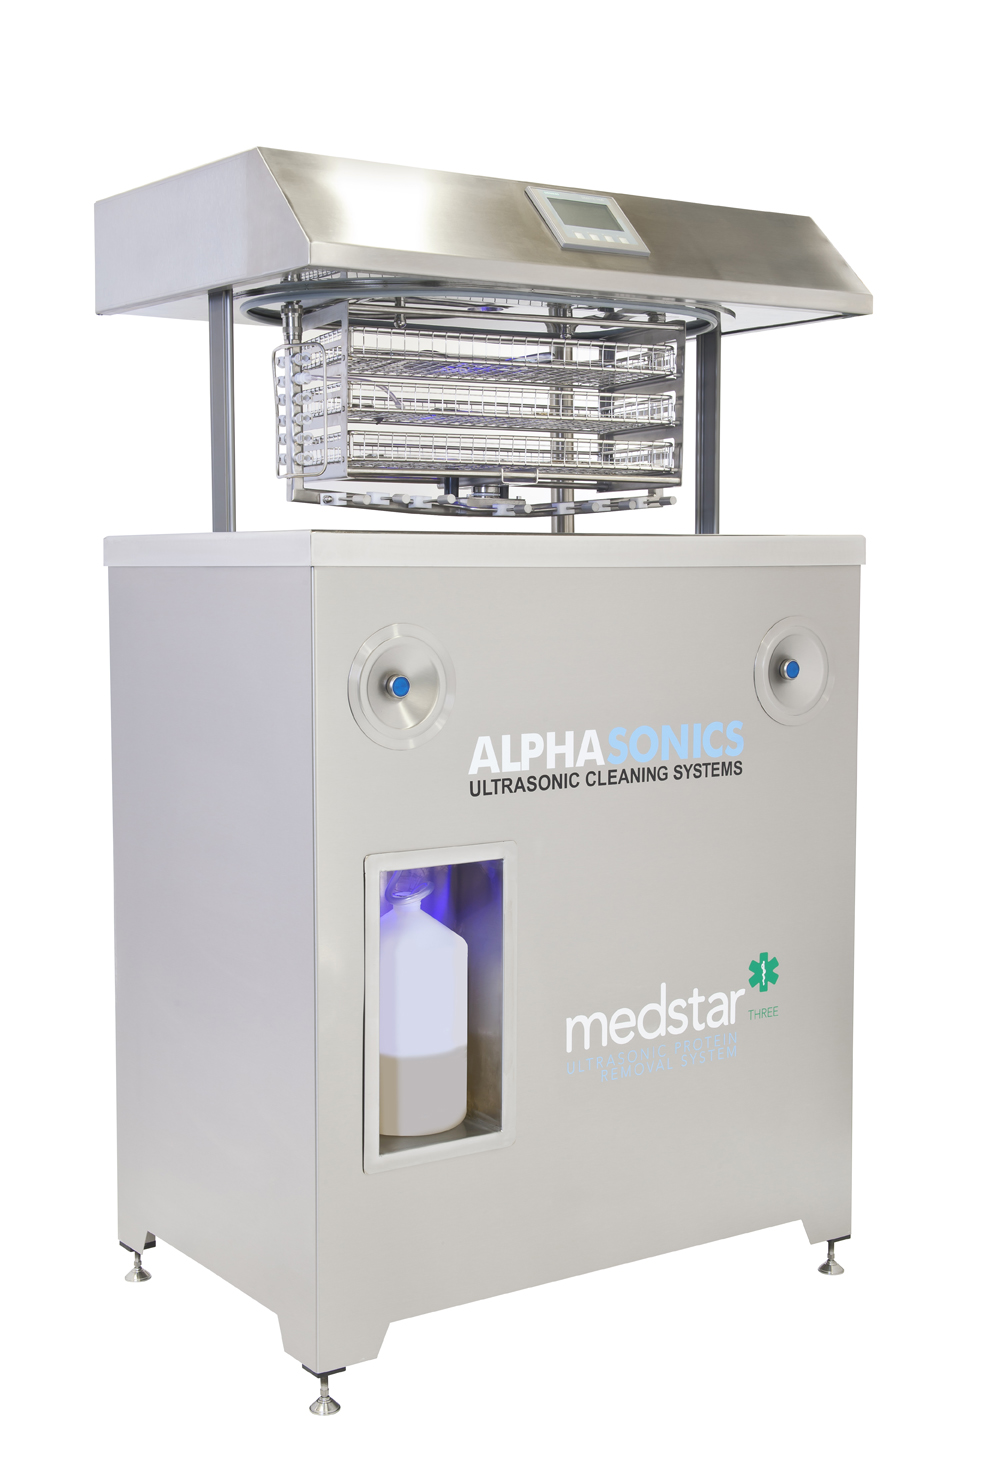 A wide shot image of the Medstar system from Alphasonics, designed for cleaning surgical systems.